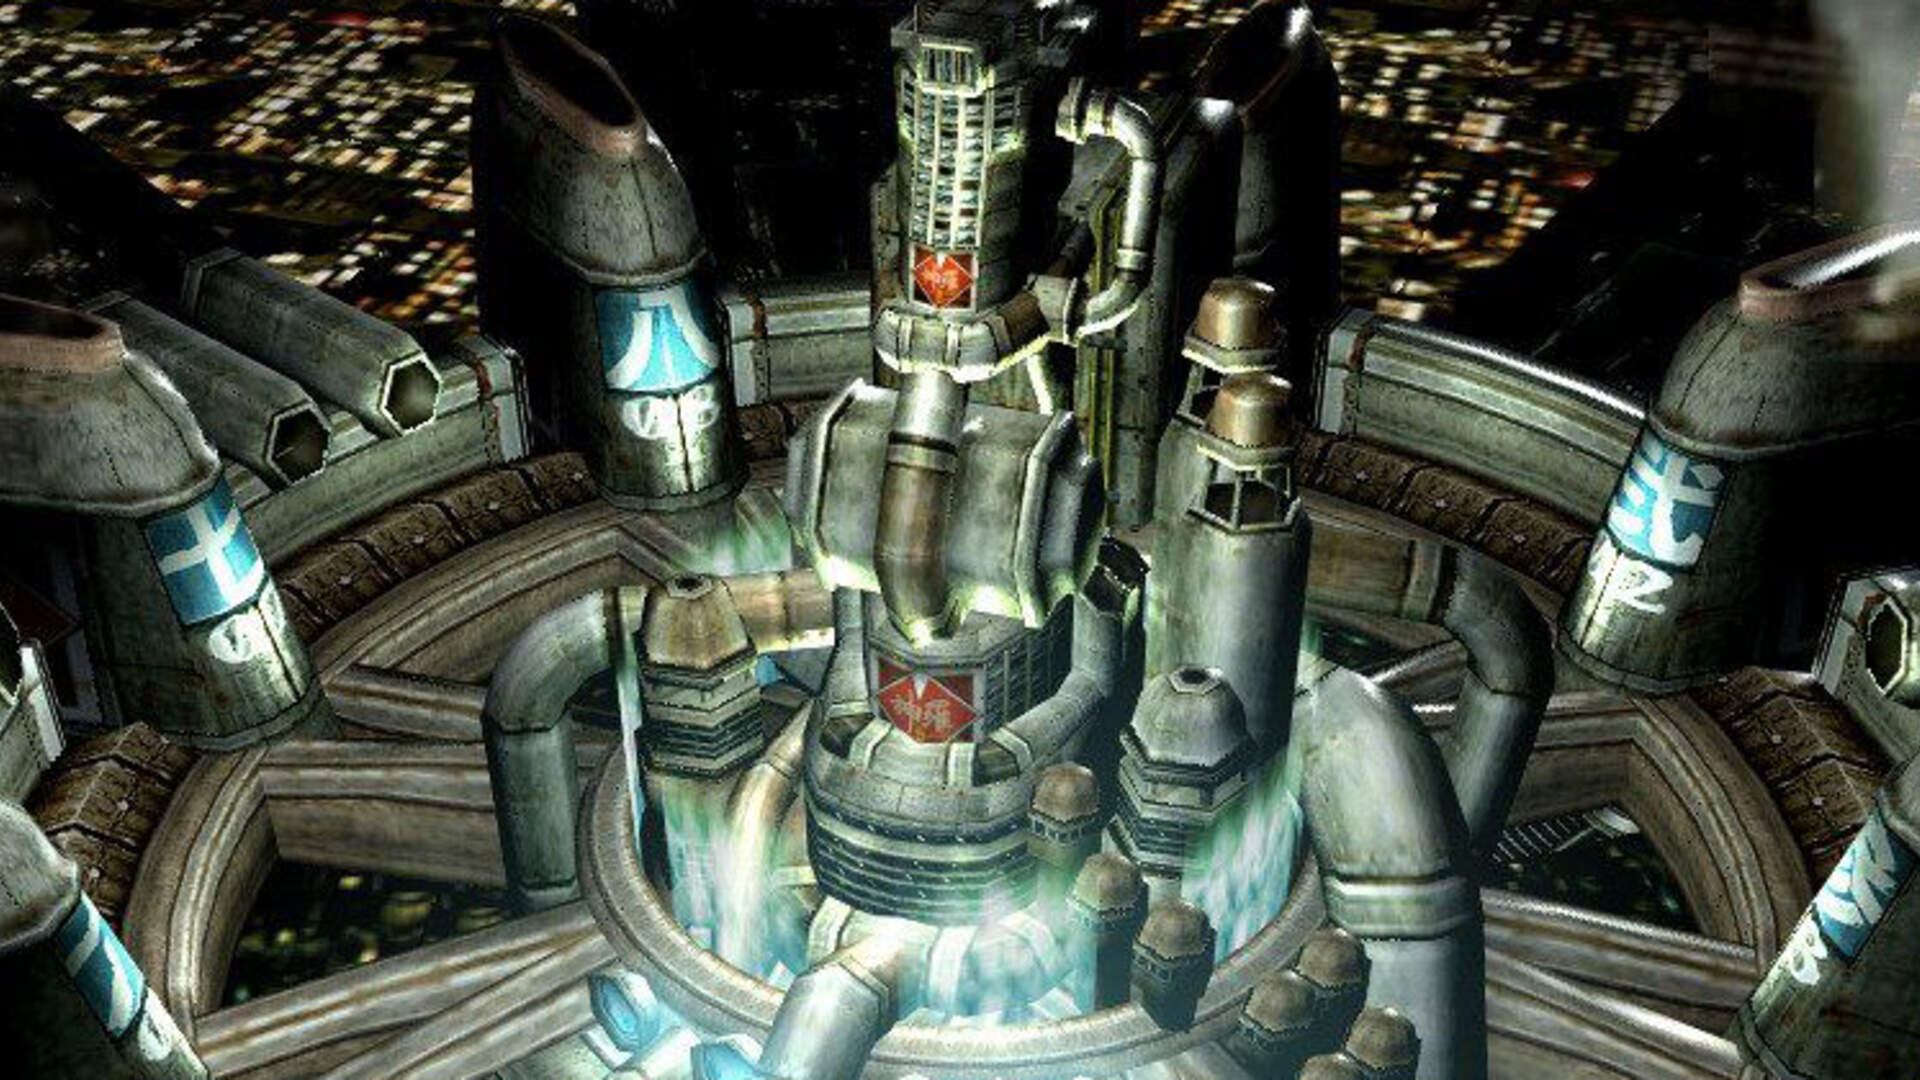 Final Fantasy VII Deep Dive, Part 1: The Dramatic Opening That Thrust Players into an RPG Revolution